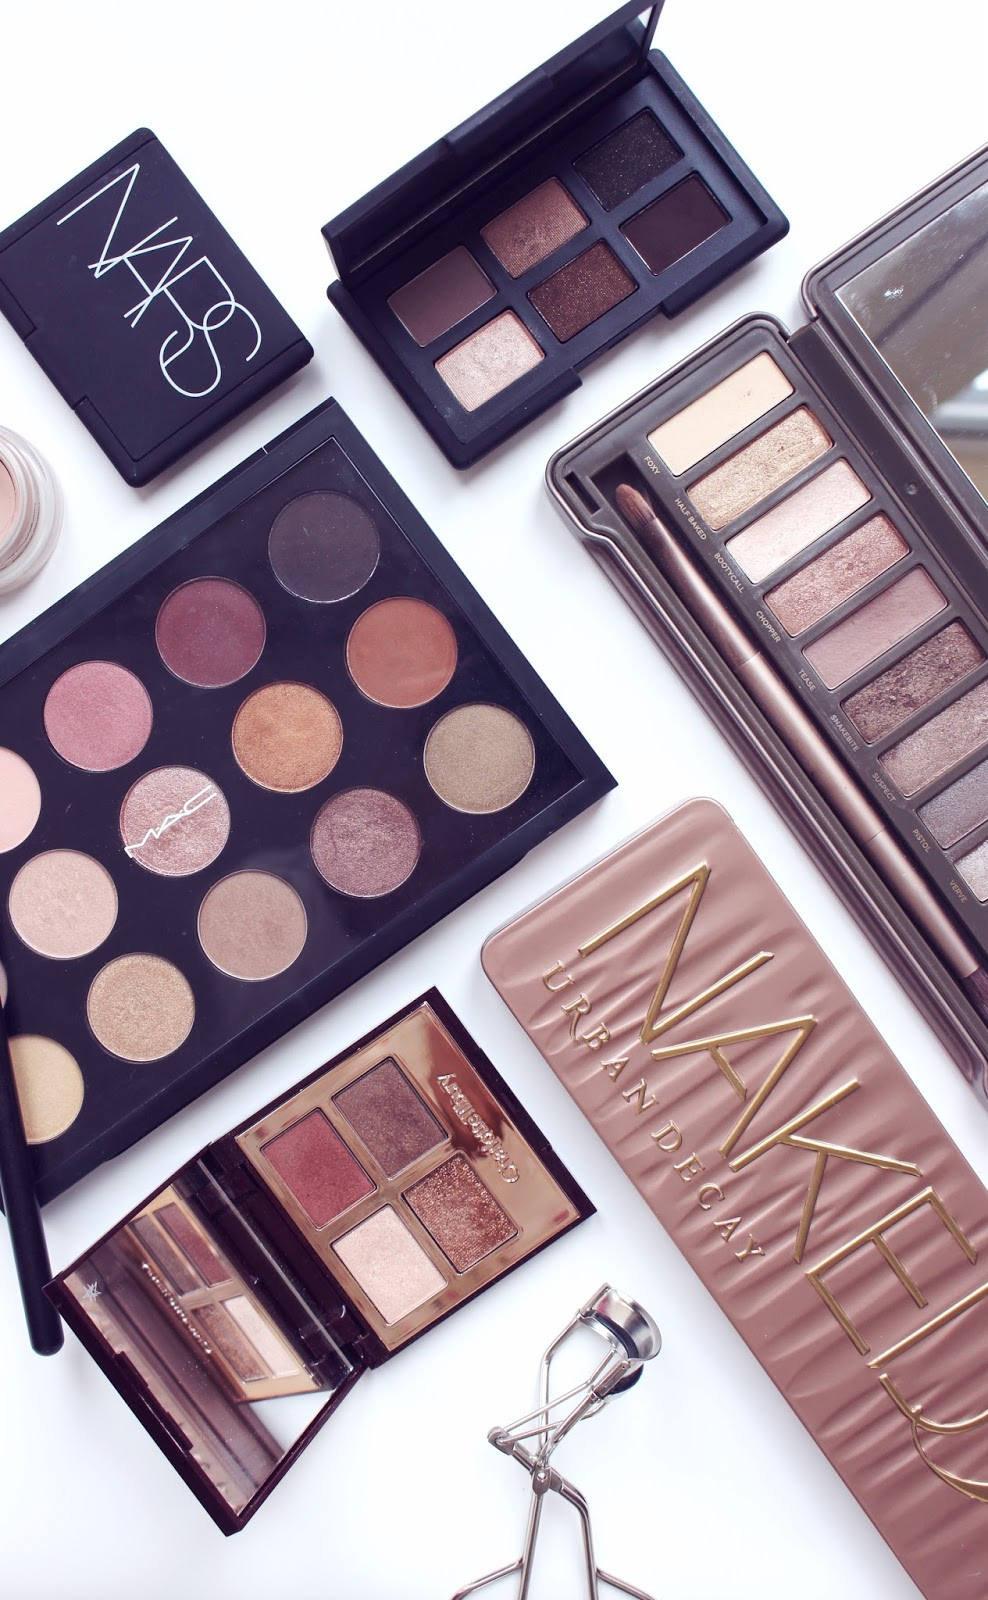 Makeup Palettes: The 'Worth It' High End Eyeshadow Palettes